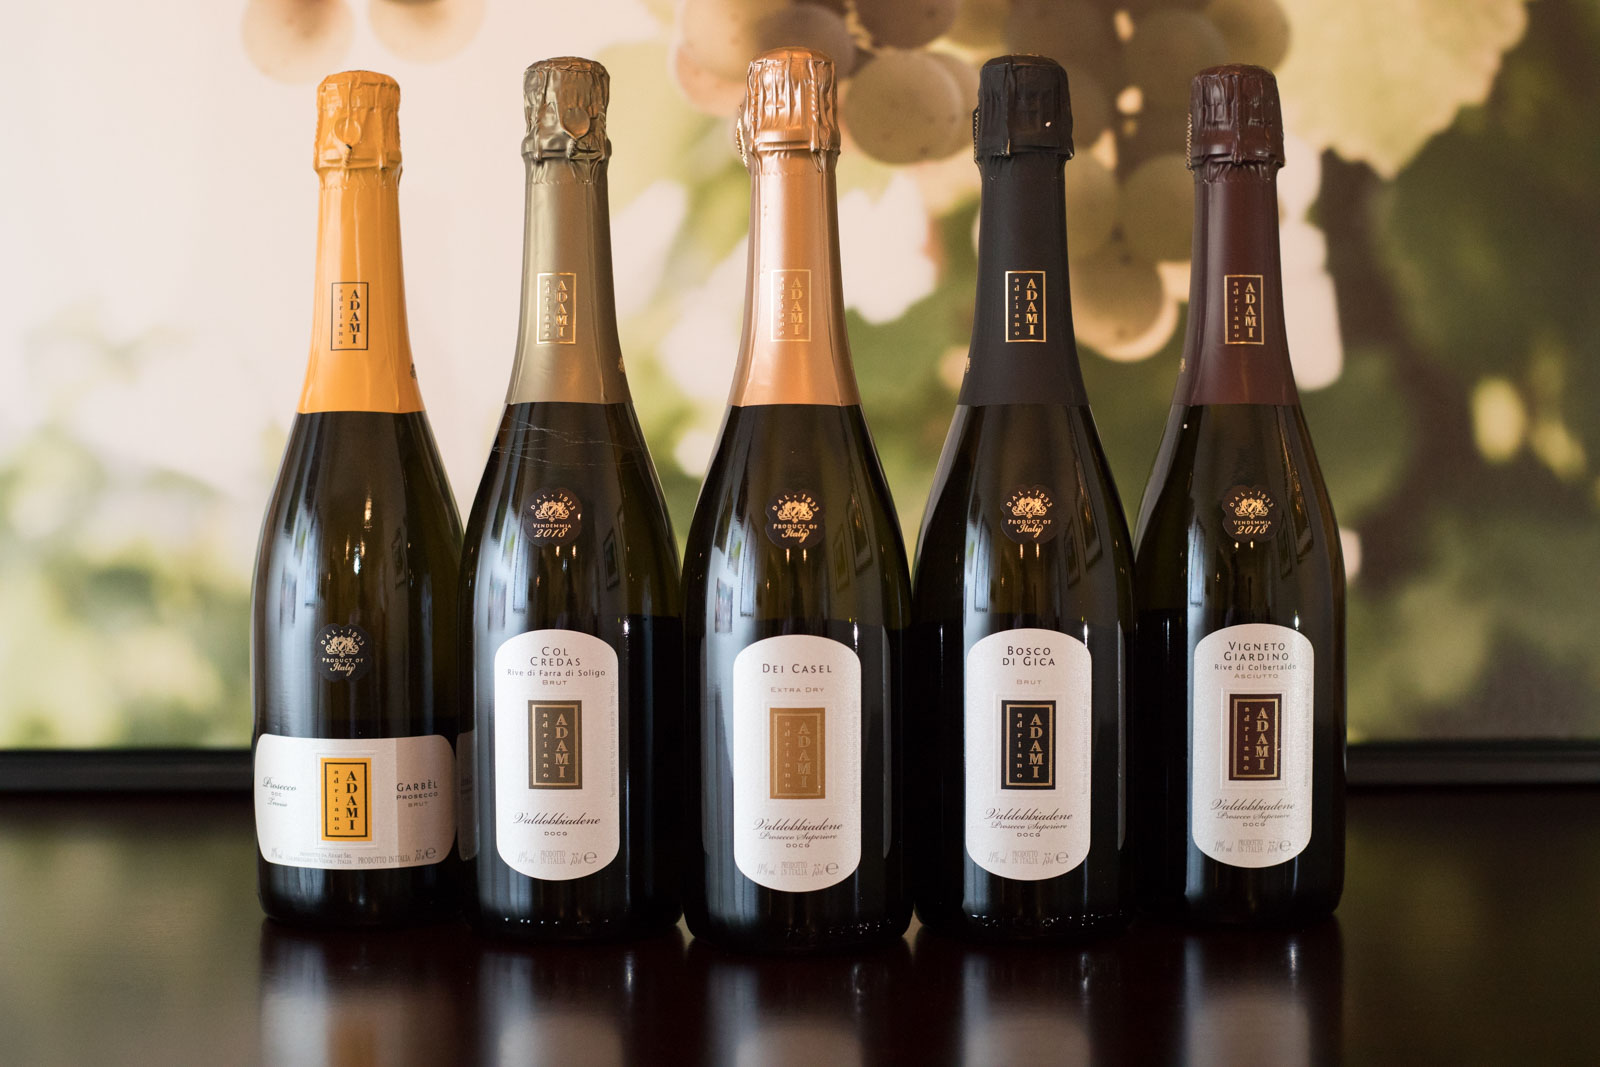 The wines of Adami Prosecco. ©Kevin Day/Opening a Bottle